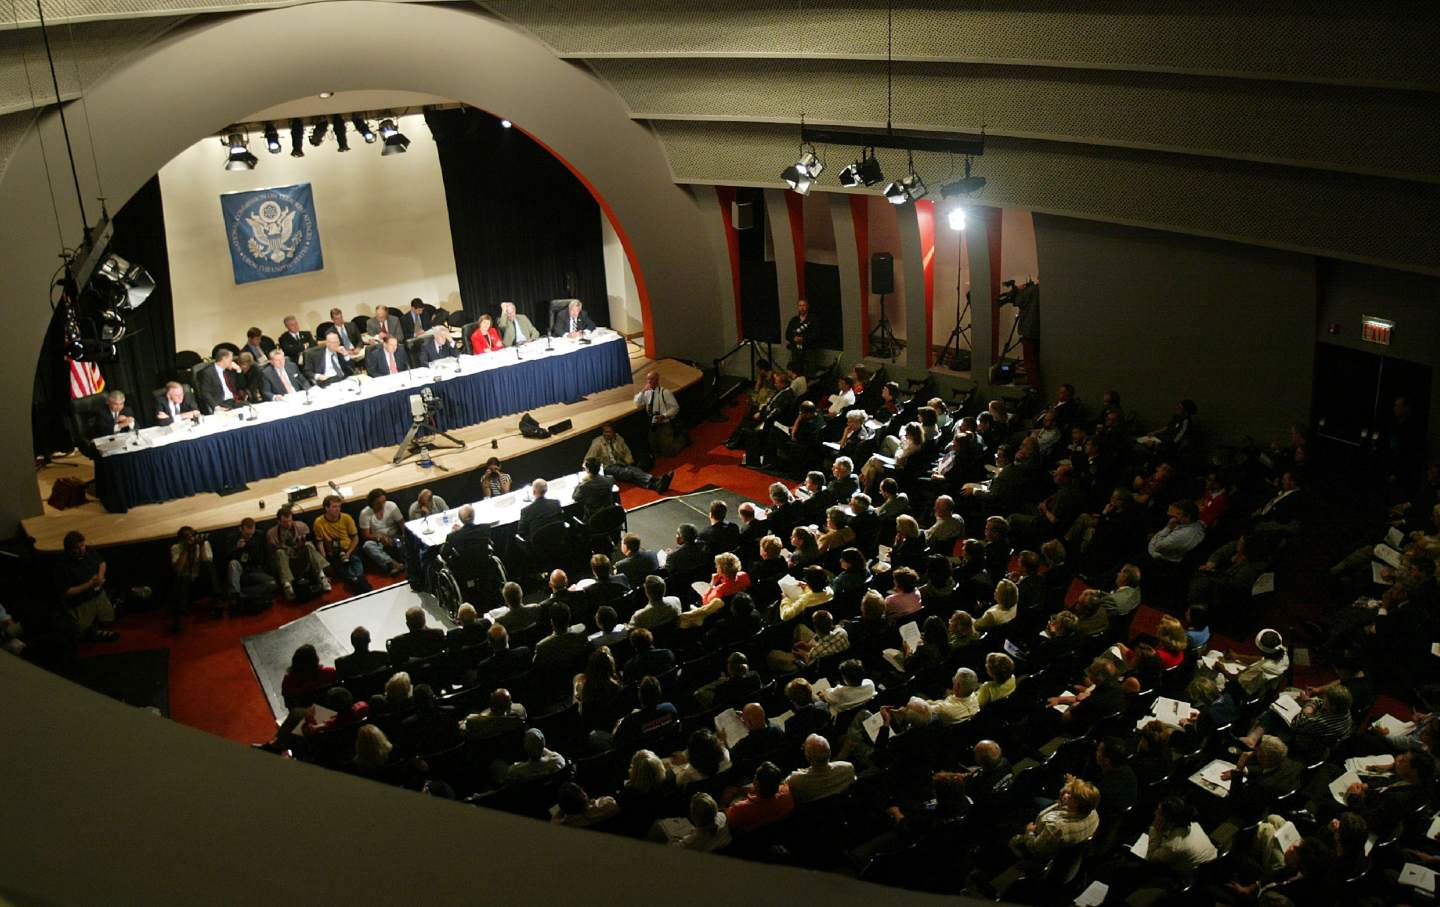 The 9/11 commission meets on stage